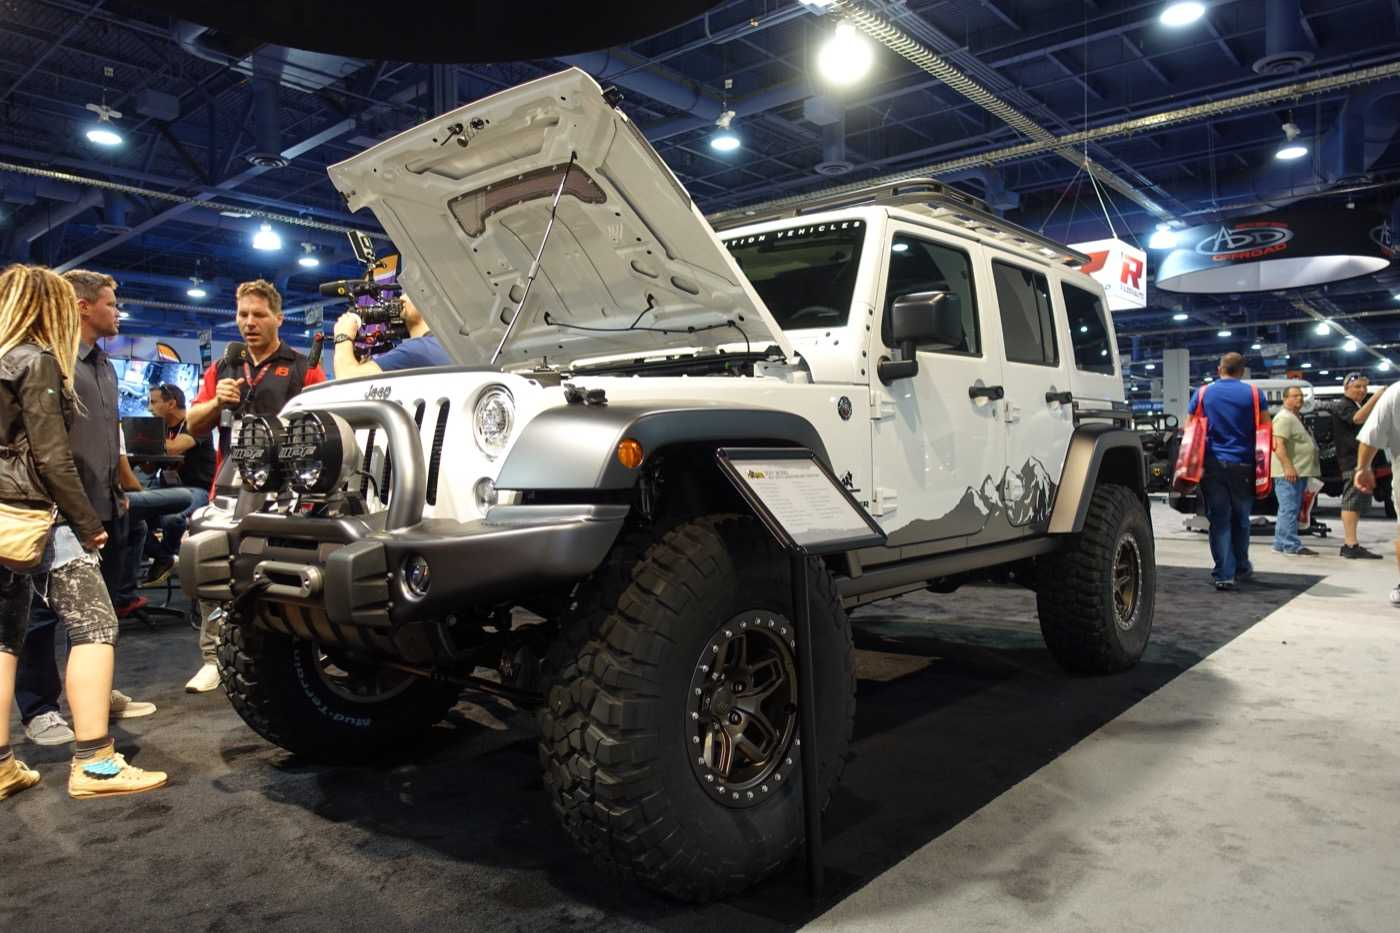 2017 JK350 AEV 20th Anniversary Edition Jeep Wrangler